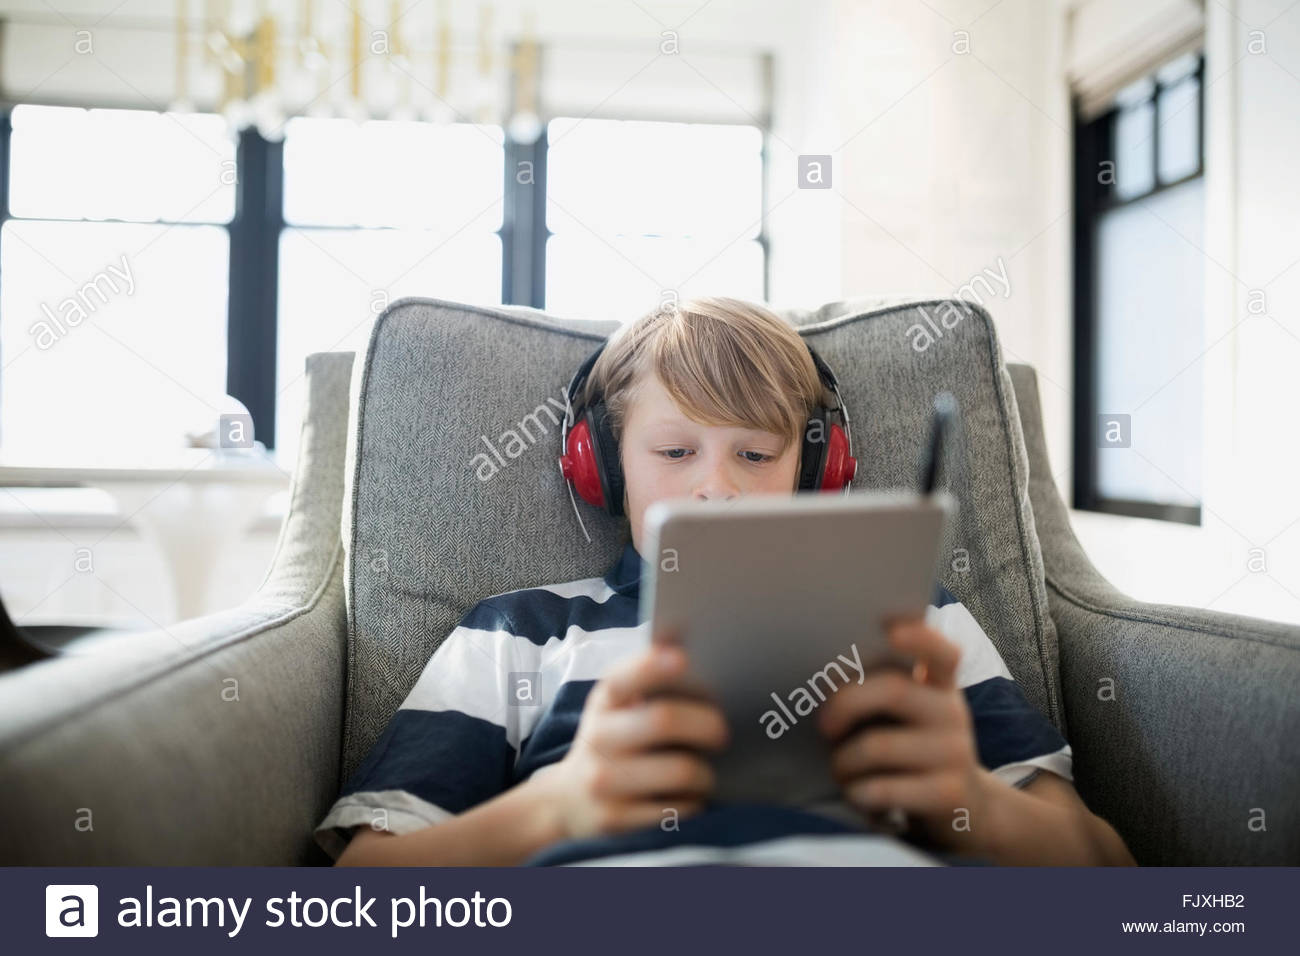 Boy with headphones using digital tablet in armchair - Stock Image